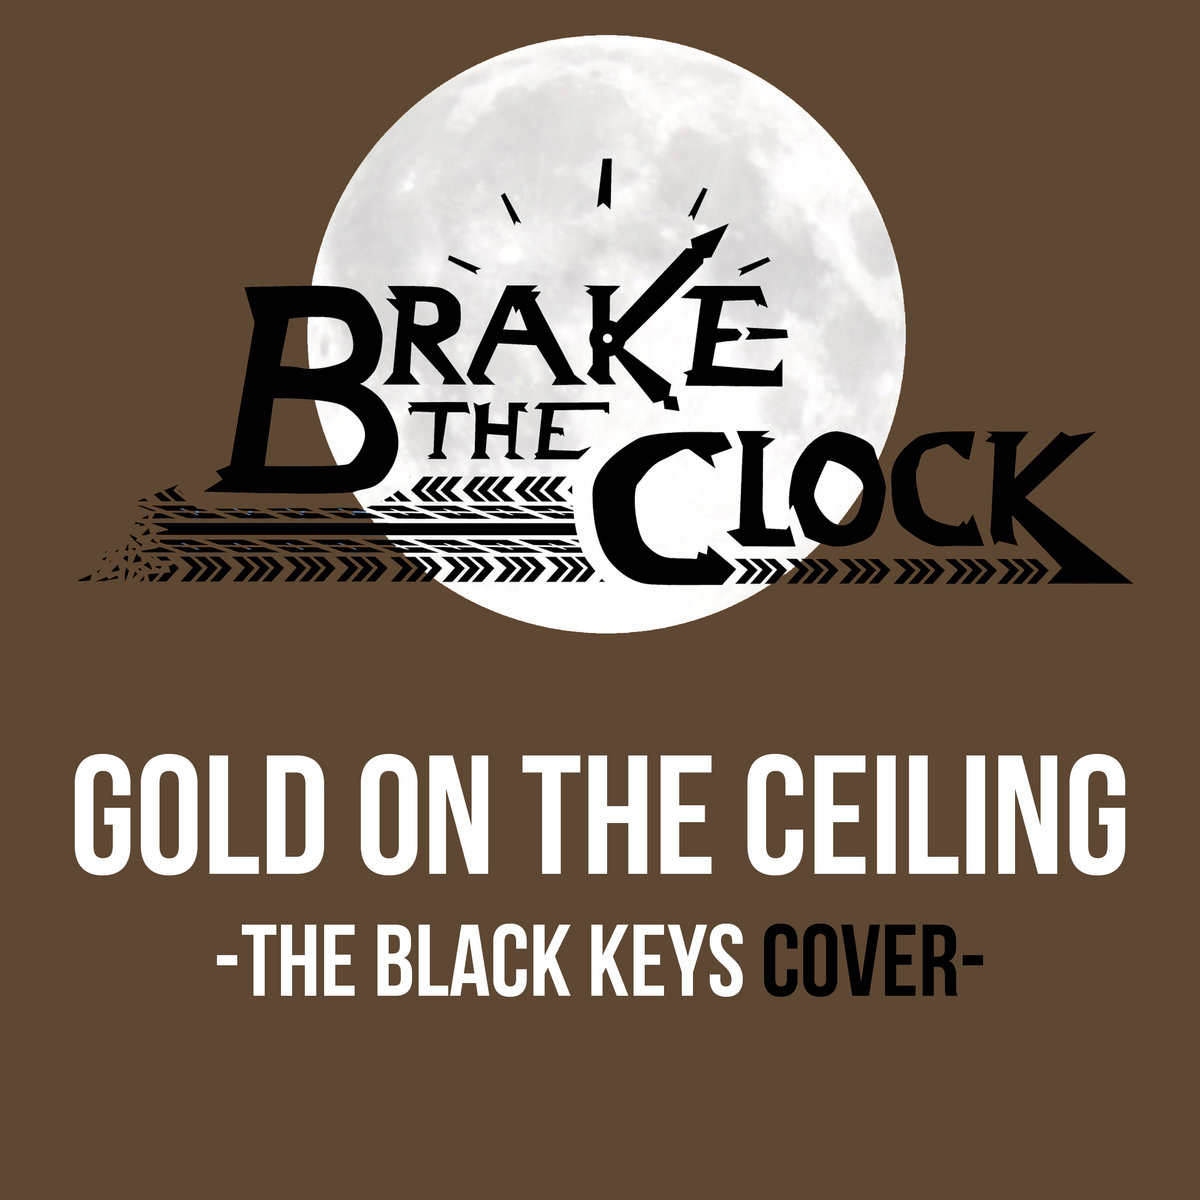 By Brake The Clock